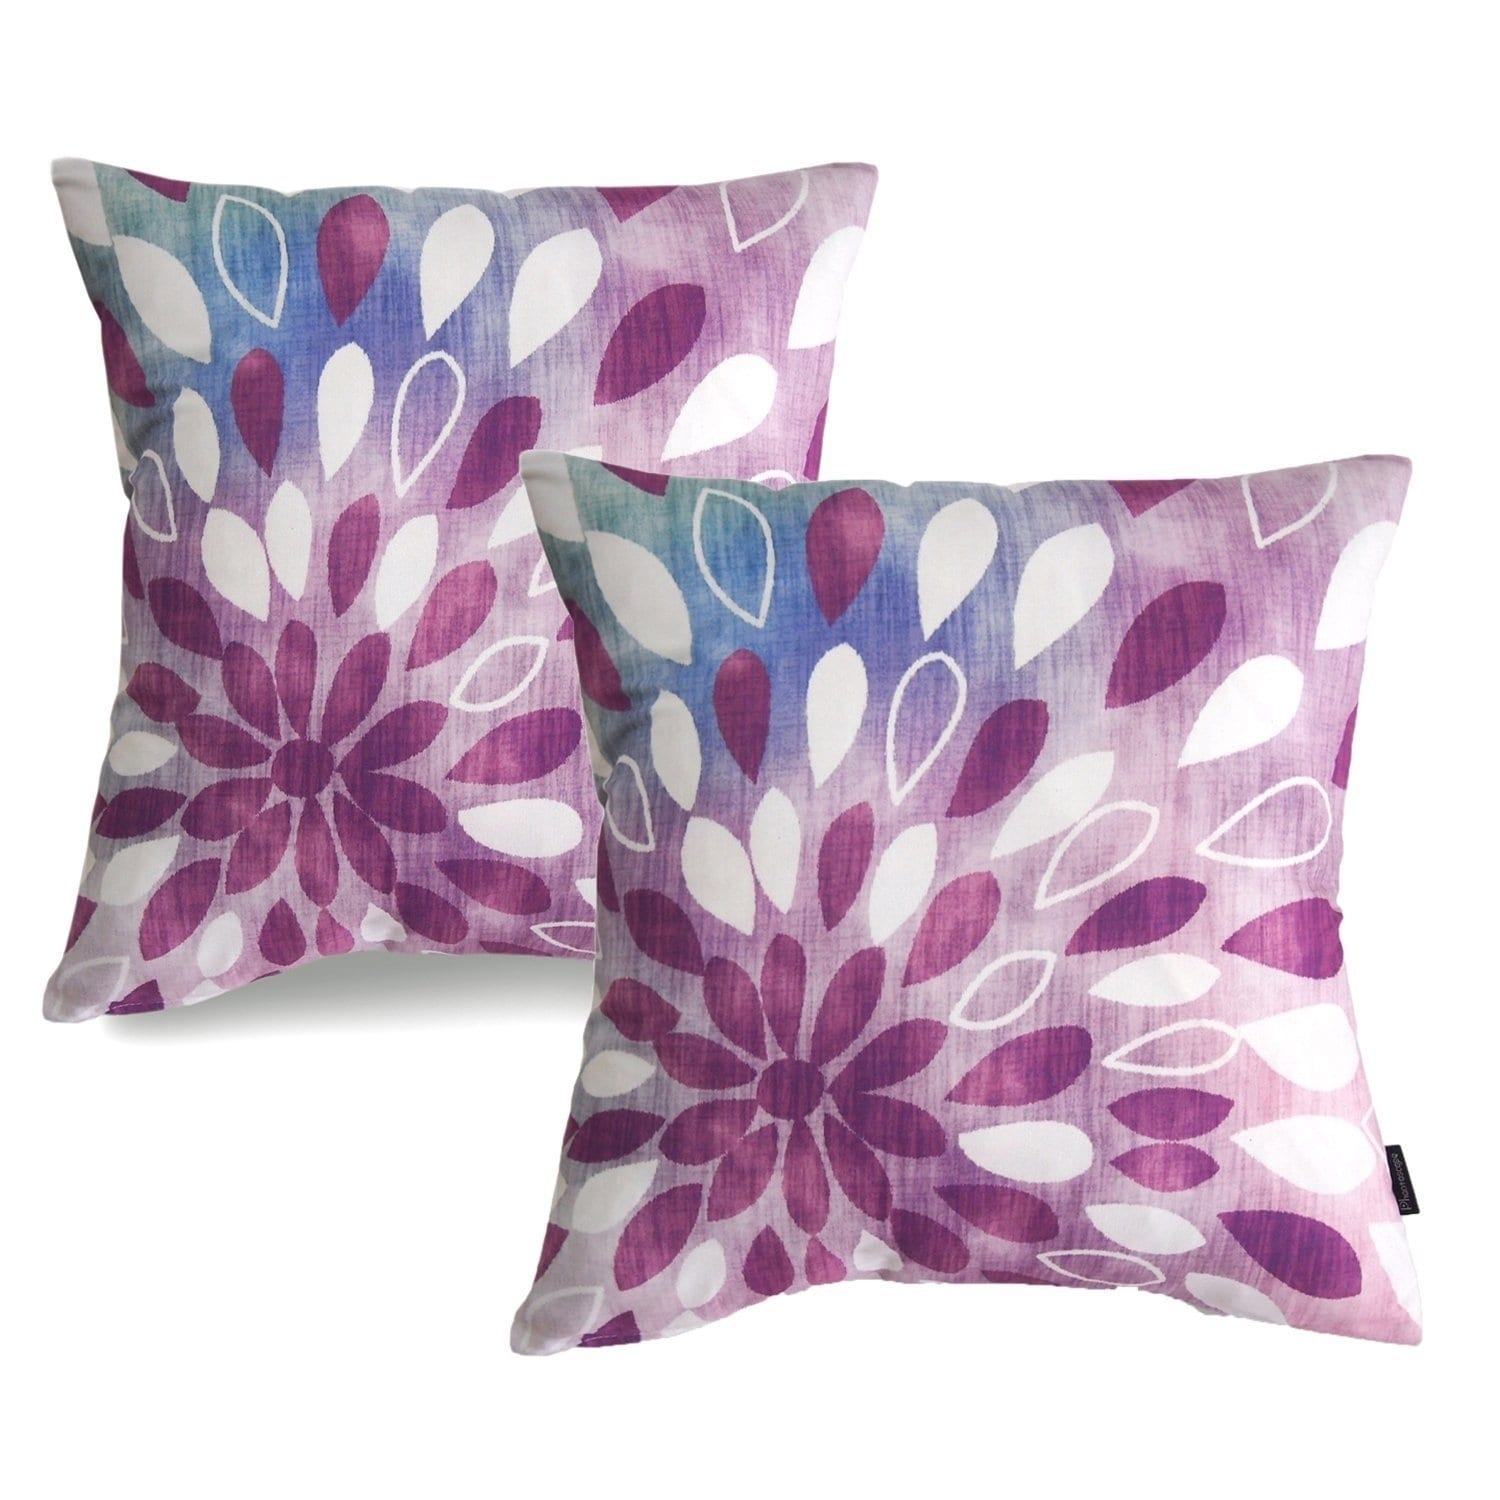 New Living Purple Series Throw Pillow Case Cushion Cover Droplets